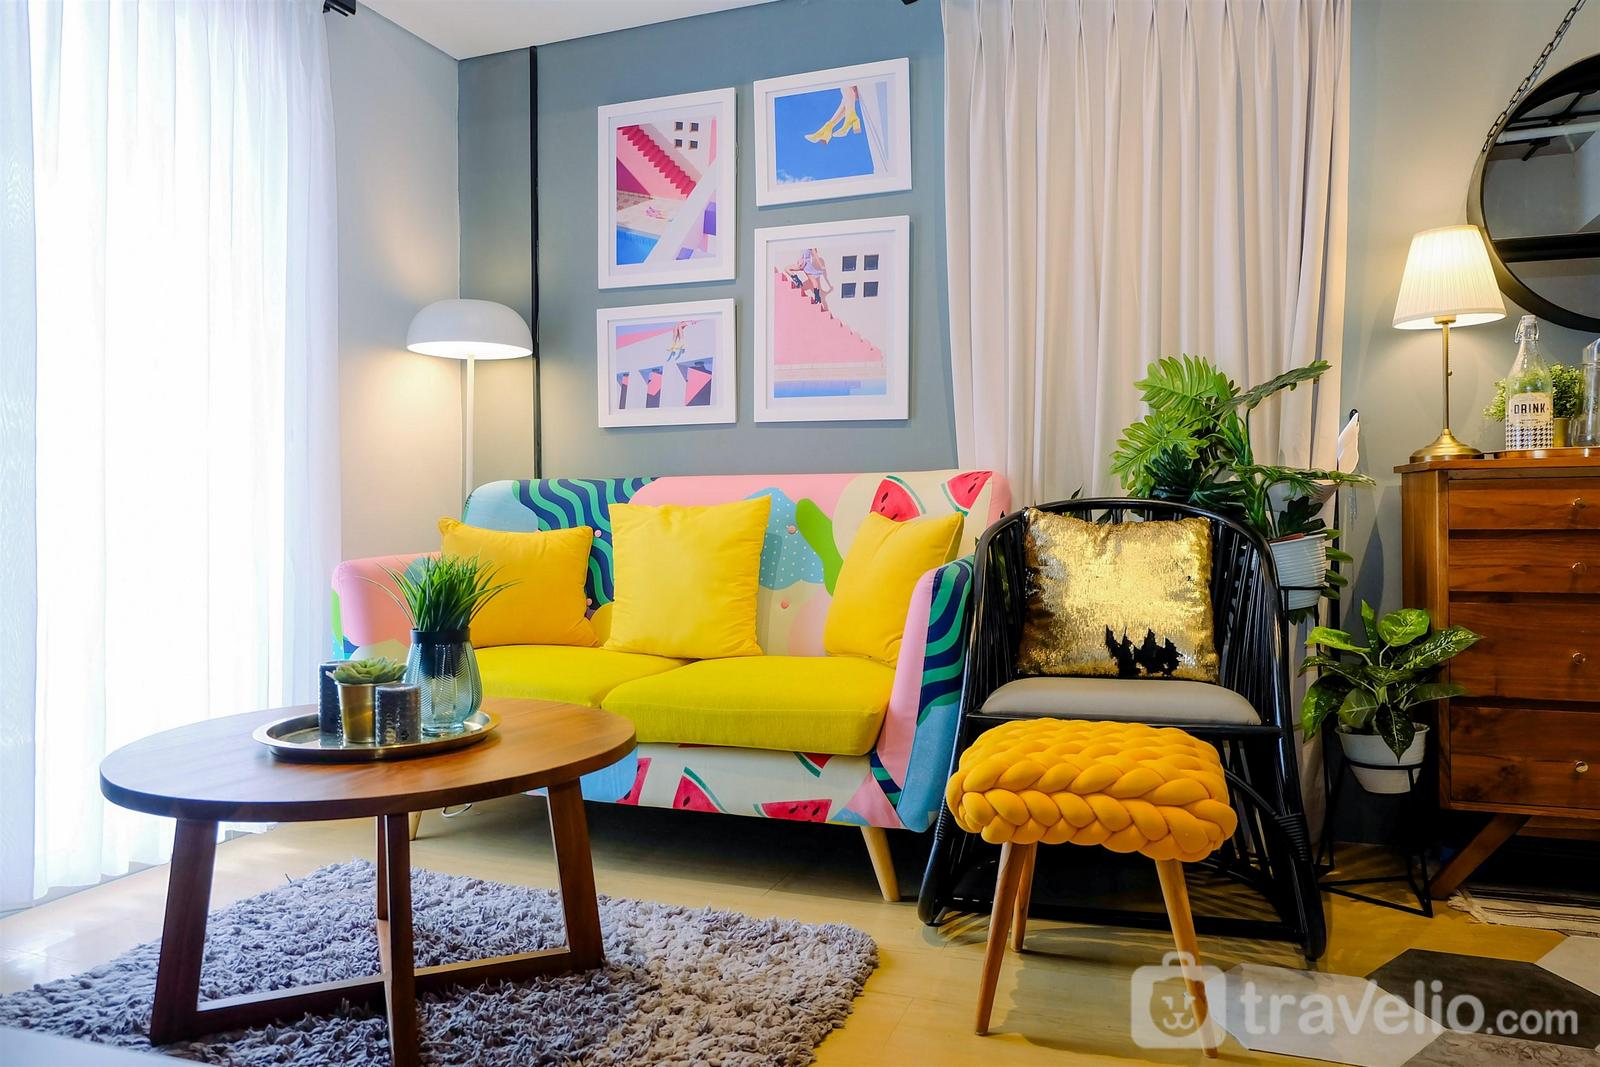 Pakubuwono Terrace Ciledug - Modern and Stylish 2BR Pakubuwono Terrace Apartment By Travelio